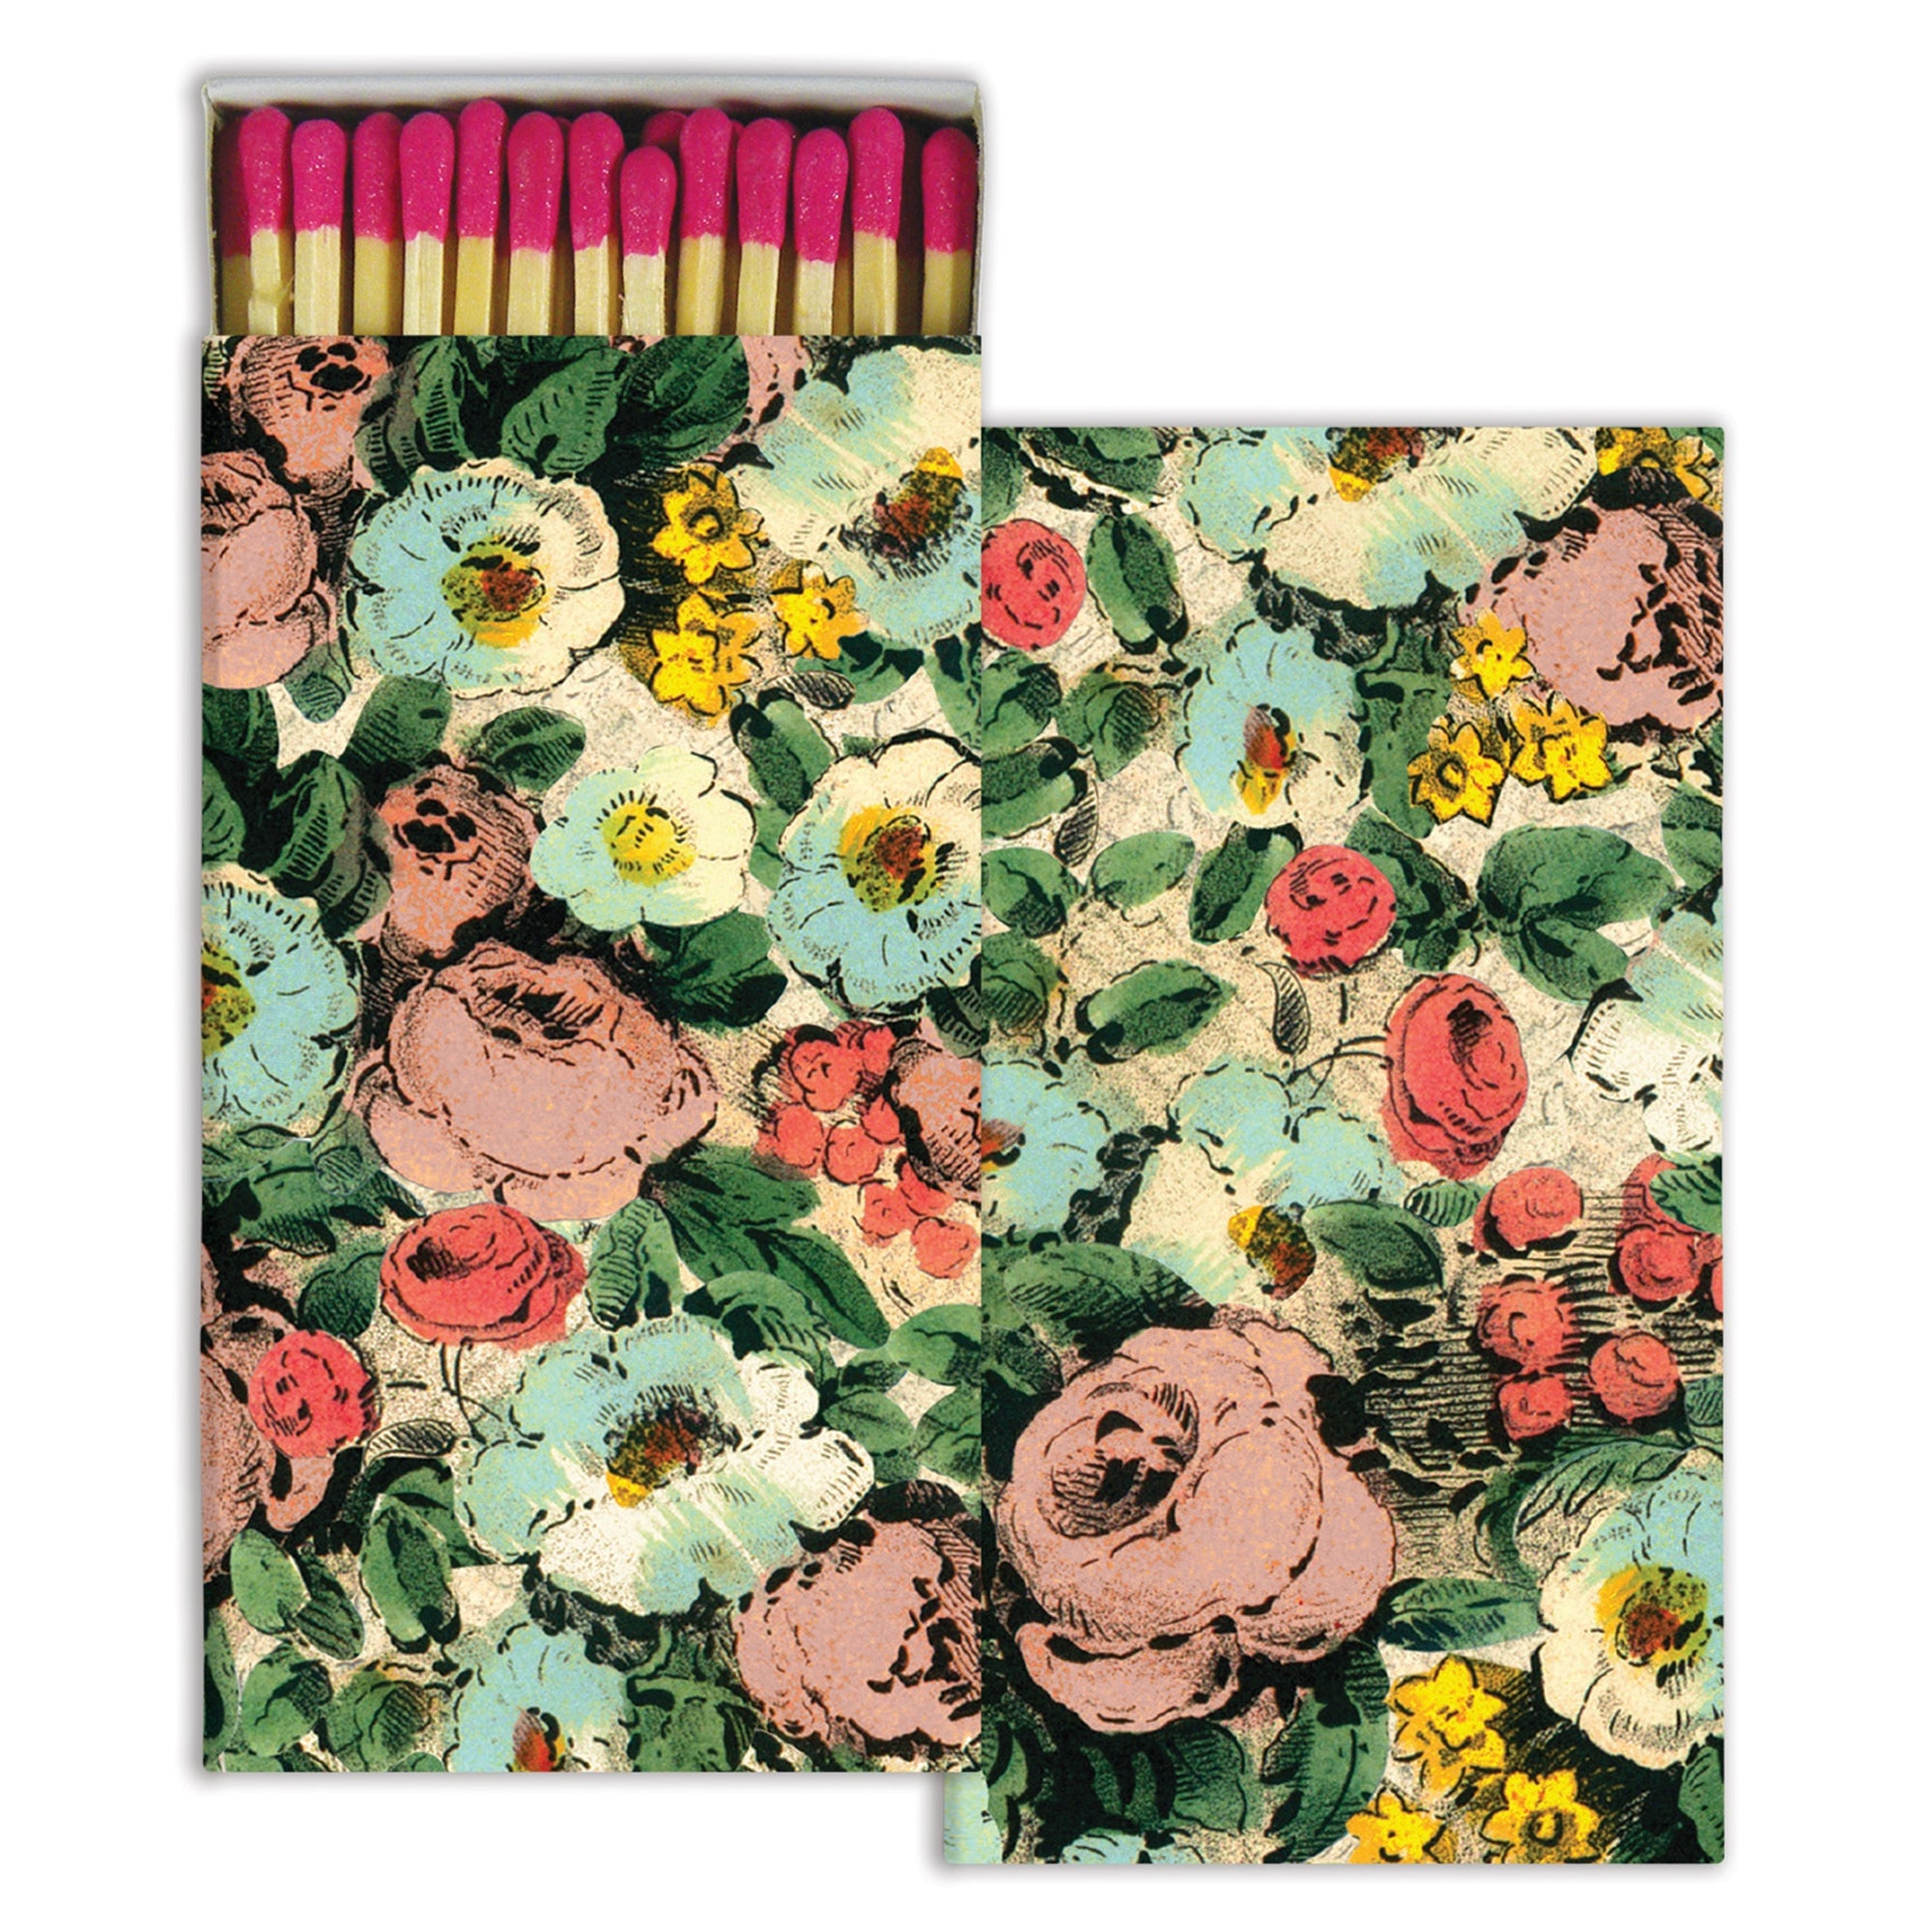 Matches - Floral Collage - Pink - CARLYLE AVENUE